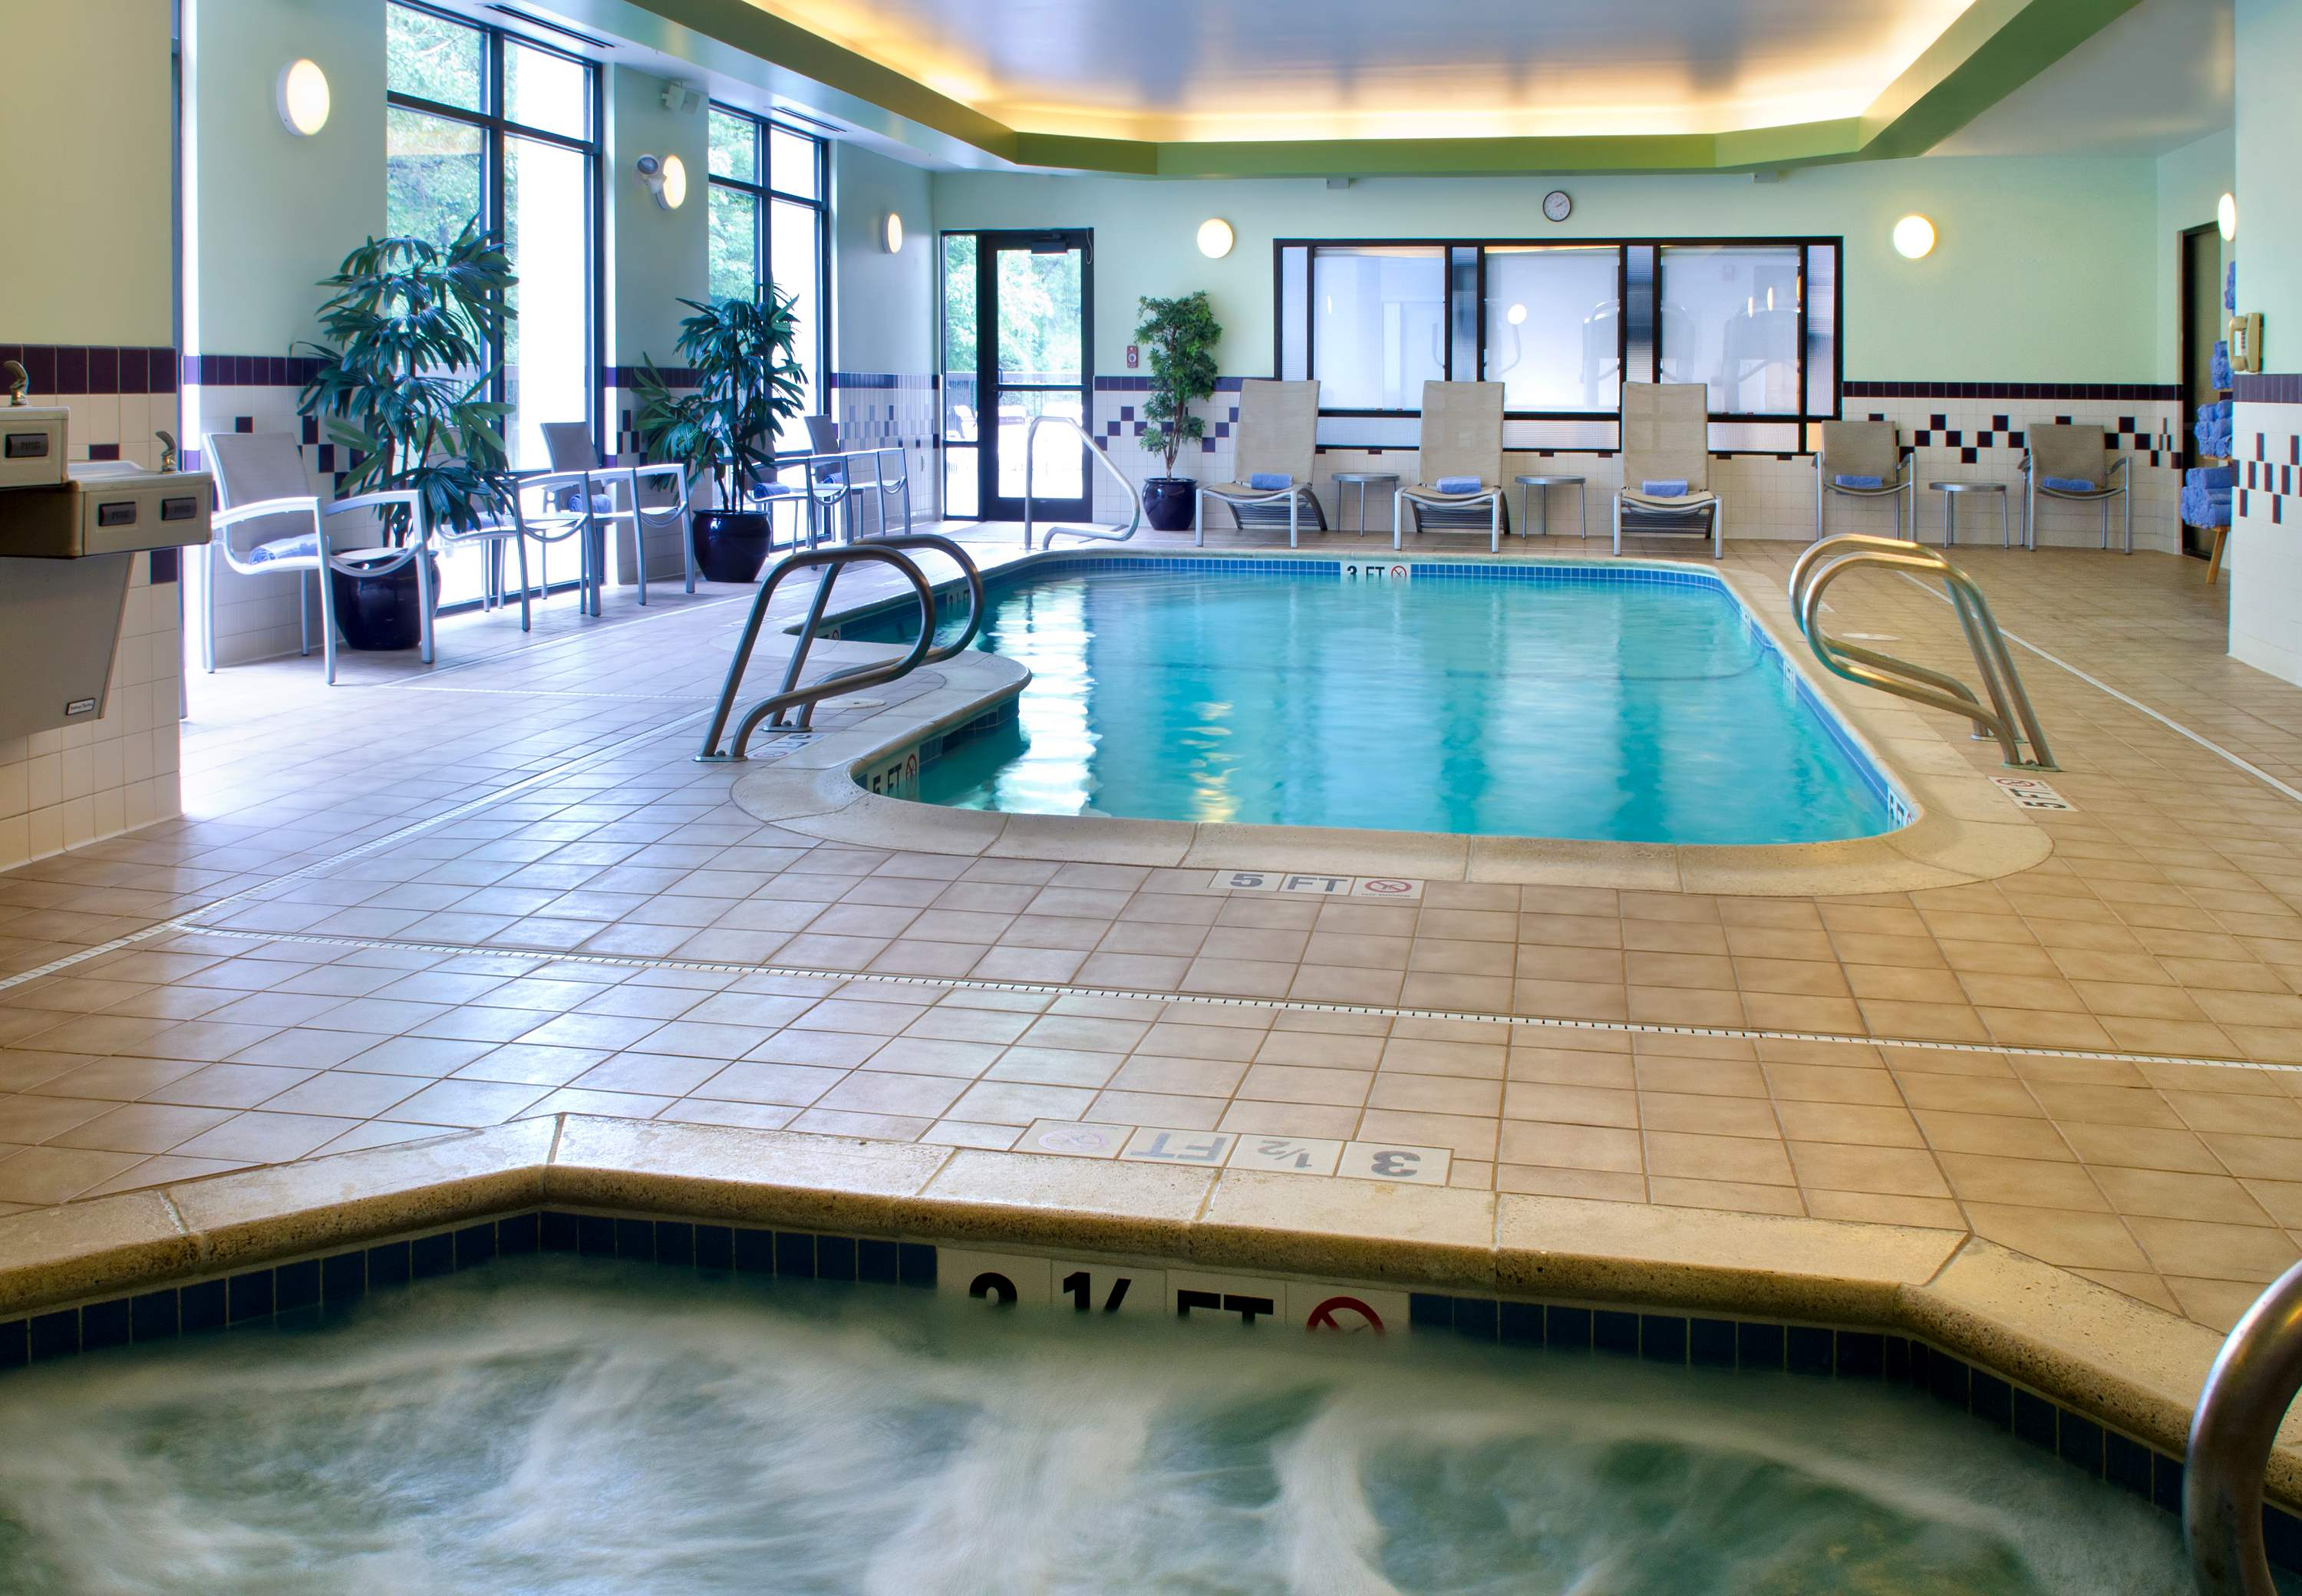 SpringHill Suites by Marriott Boston Andover image 8